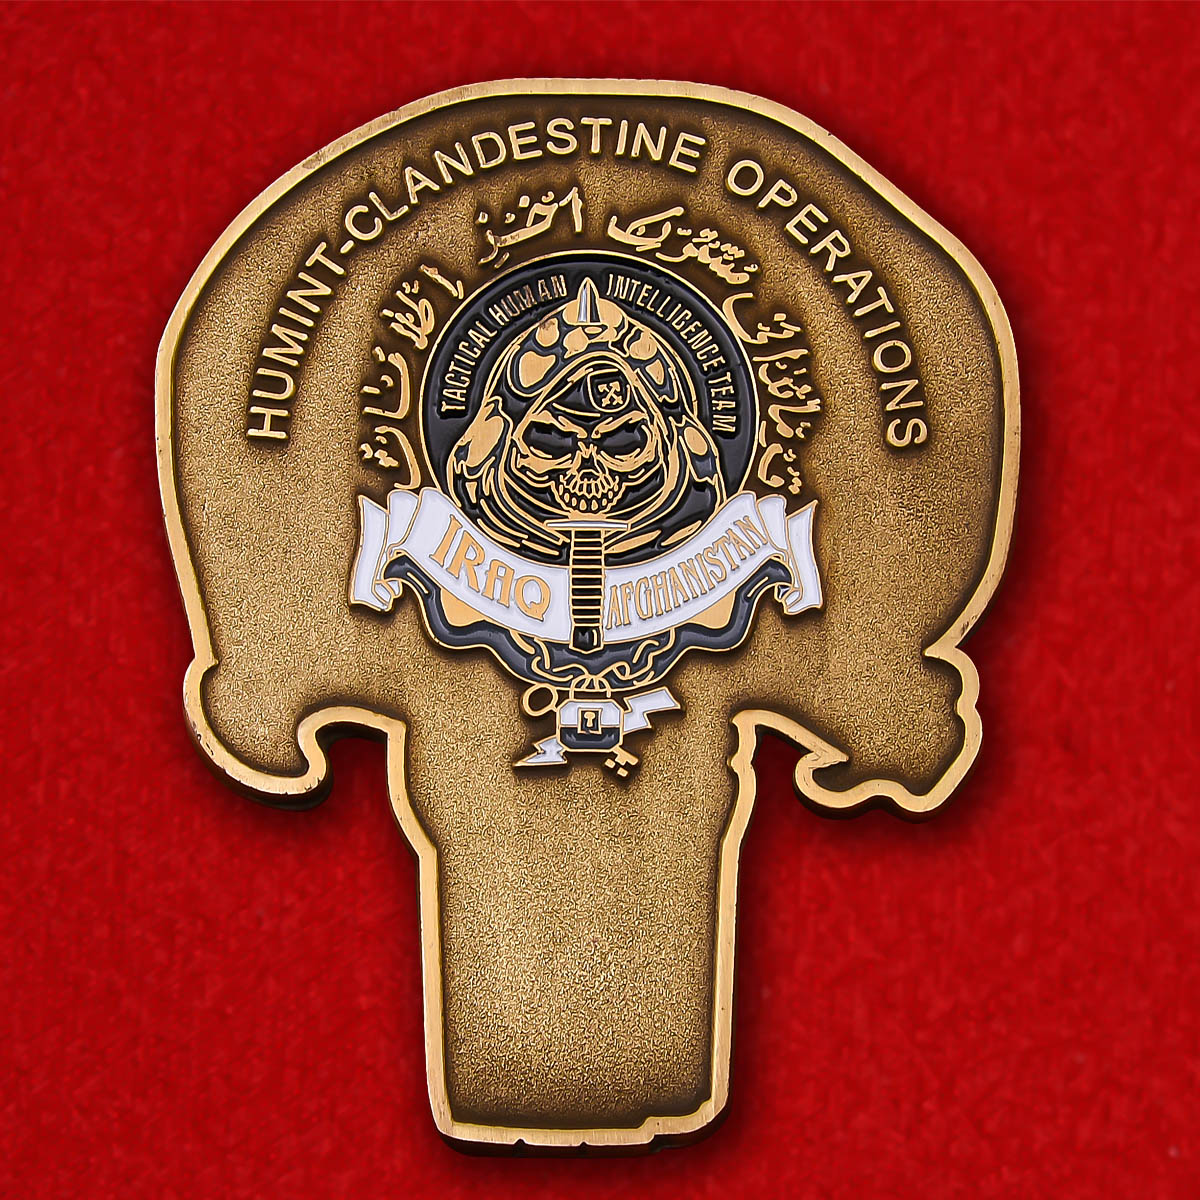 Humint-Clandestine Operations in Iraq And Afghanistan Challenge coin